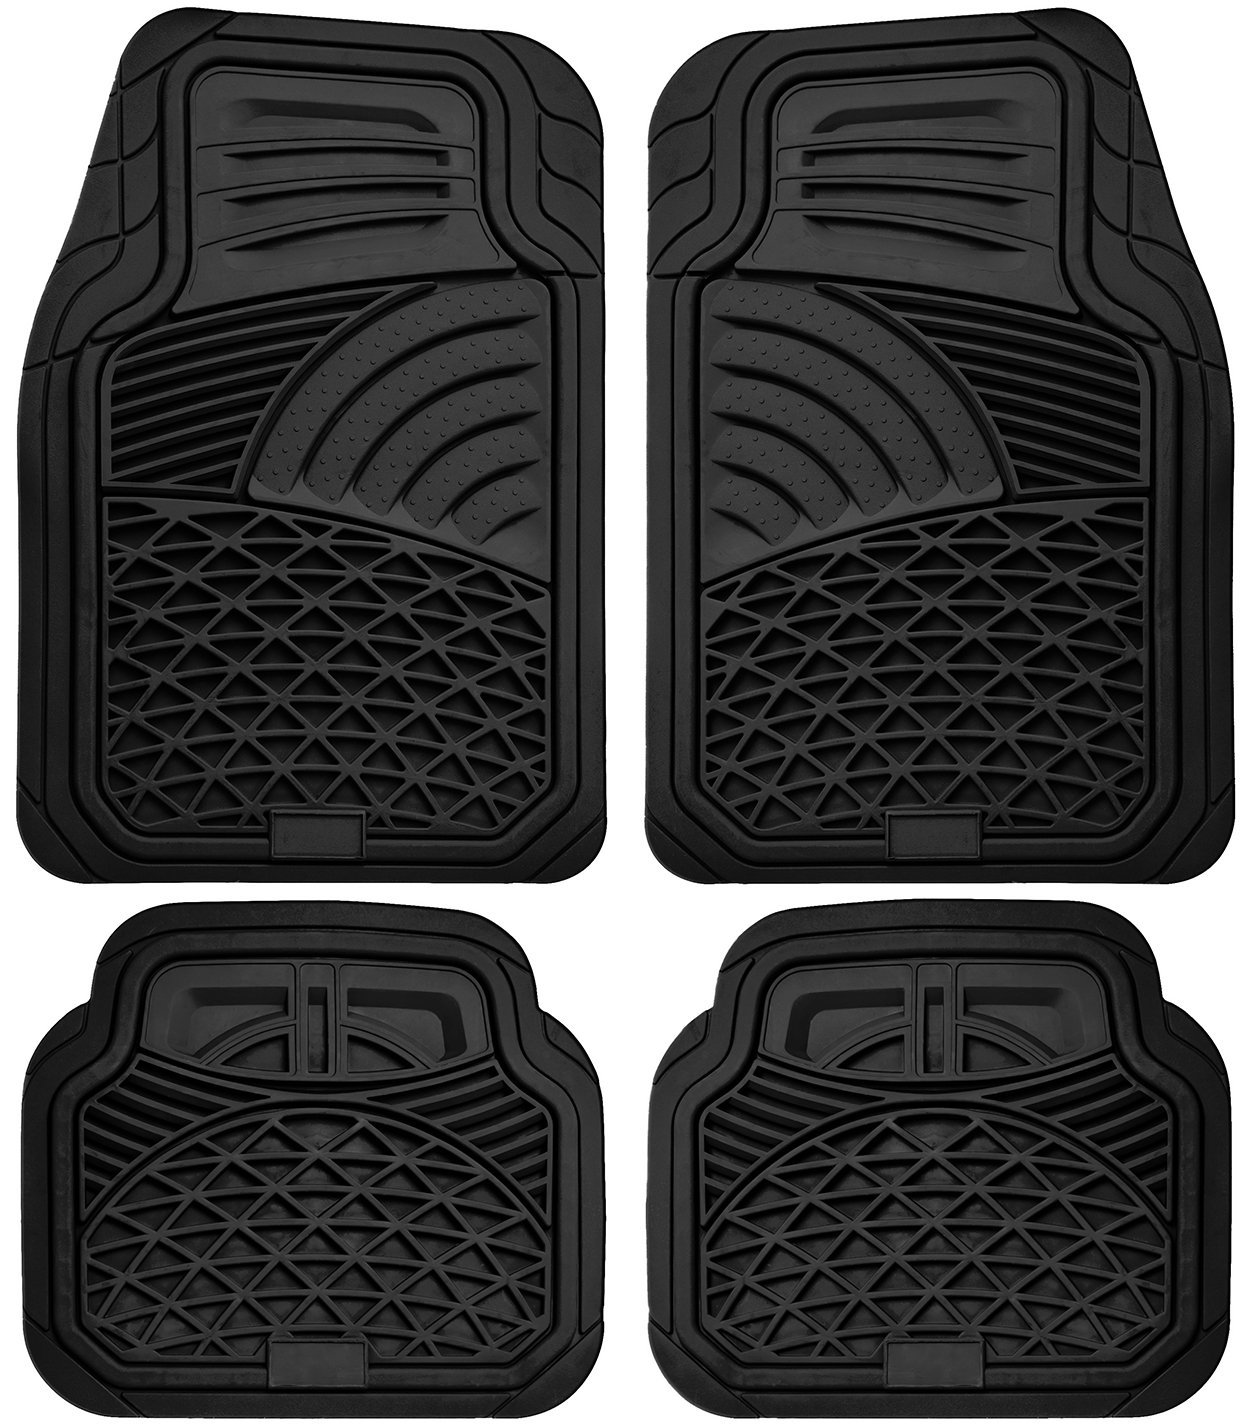 attachment tux forum car floor mats winter threads mat